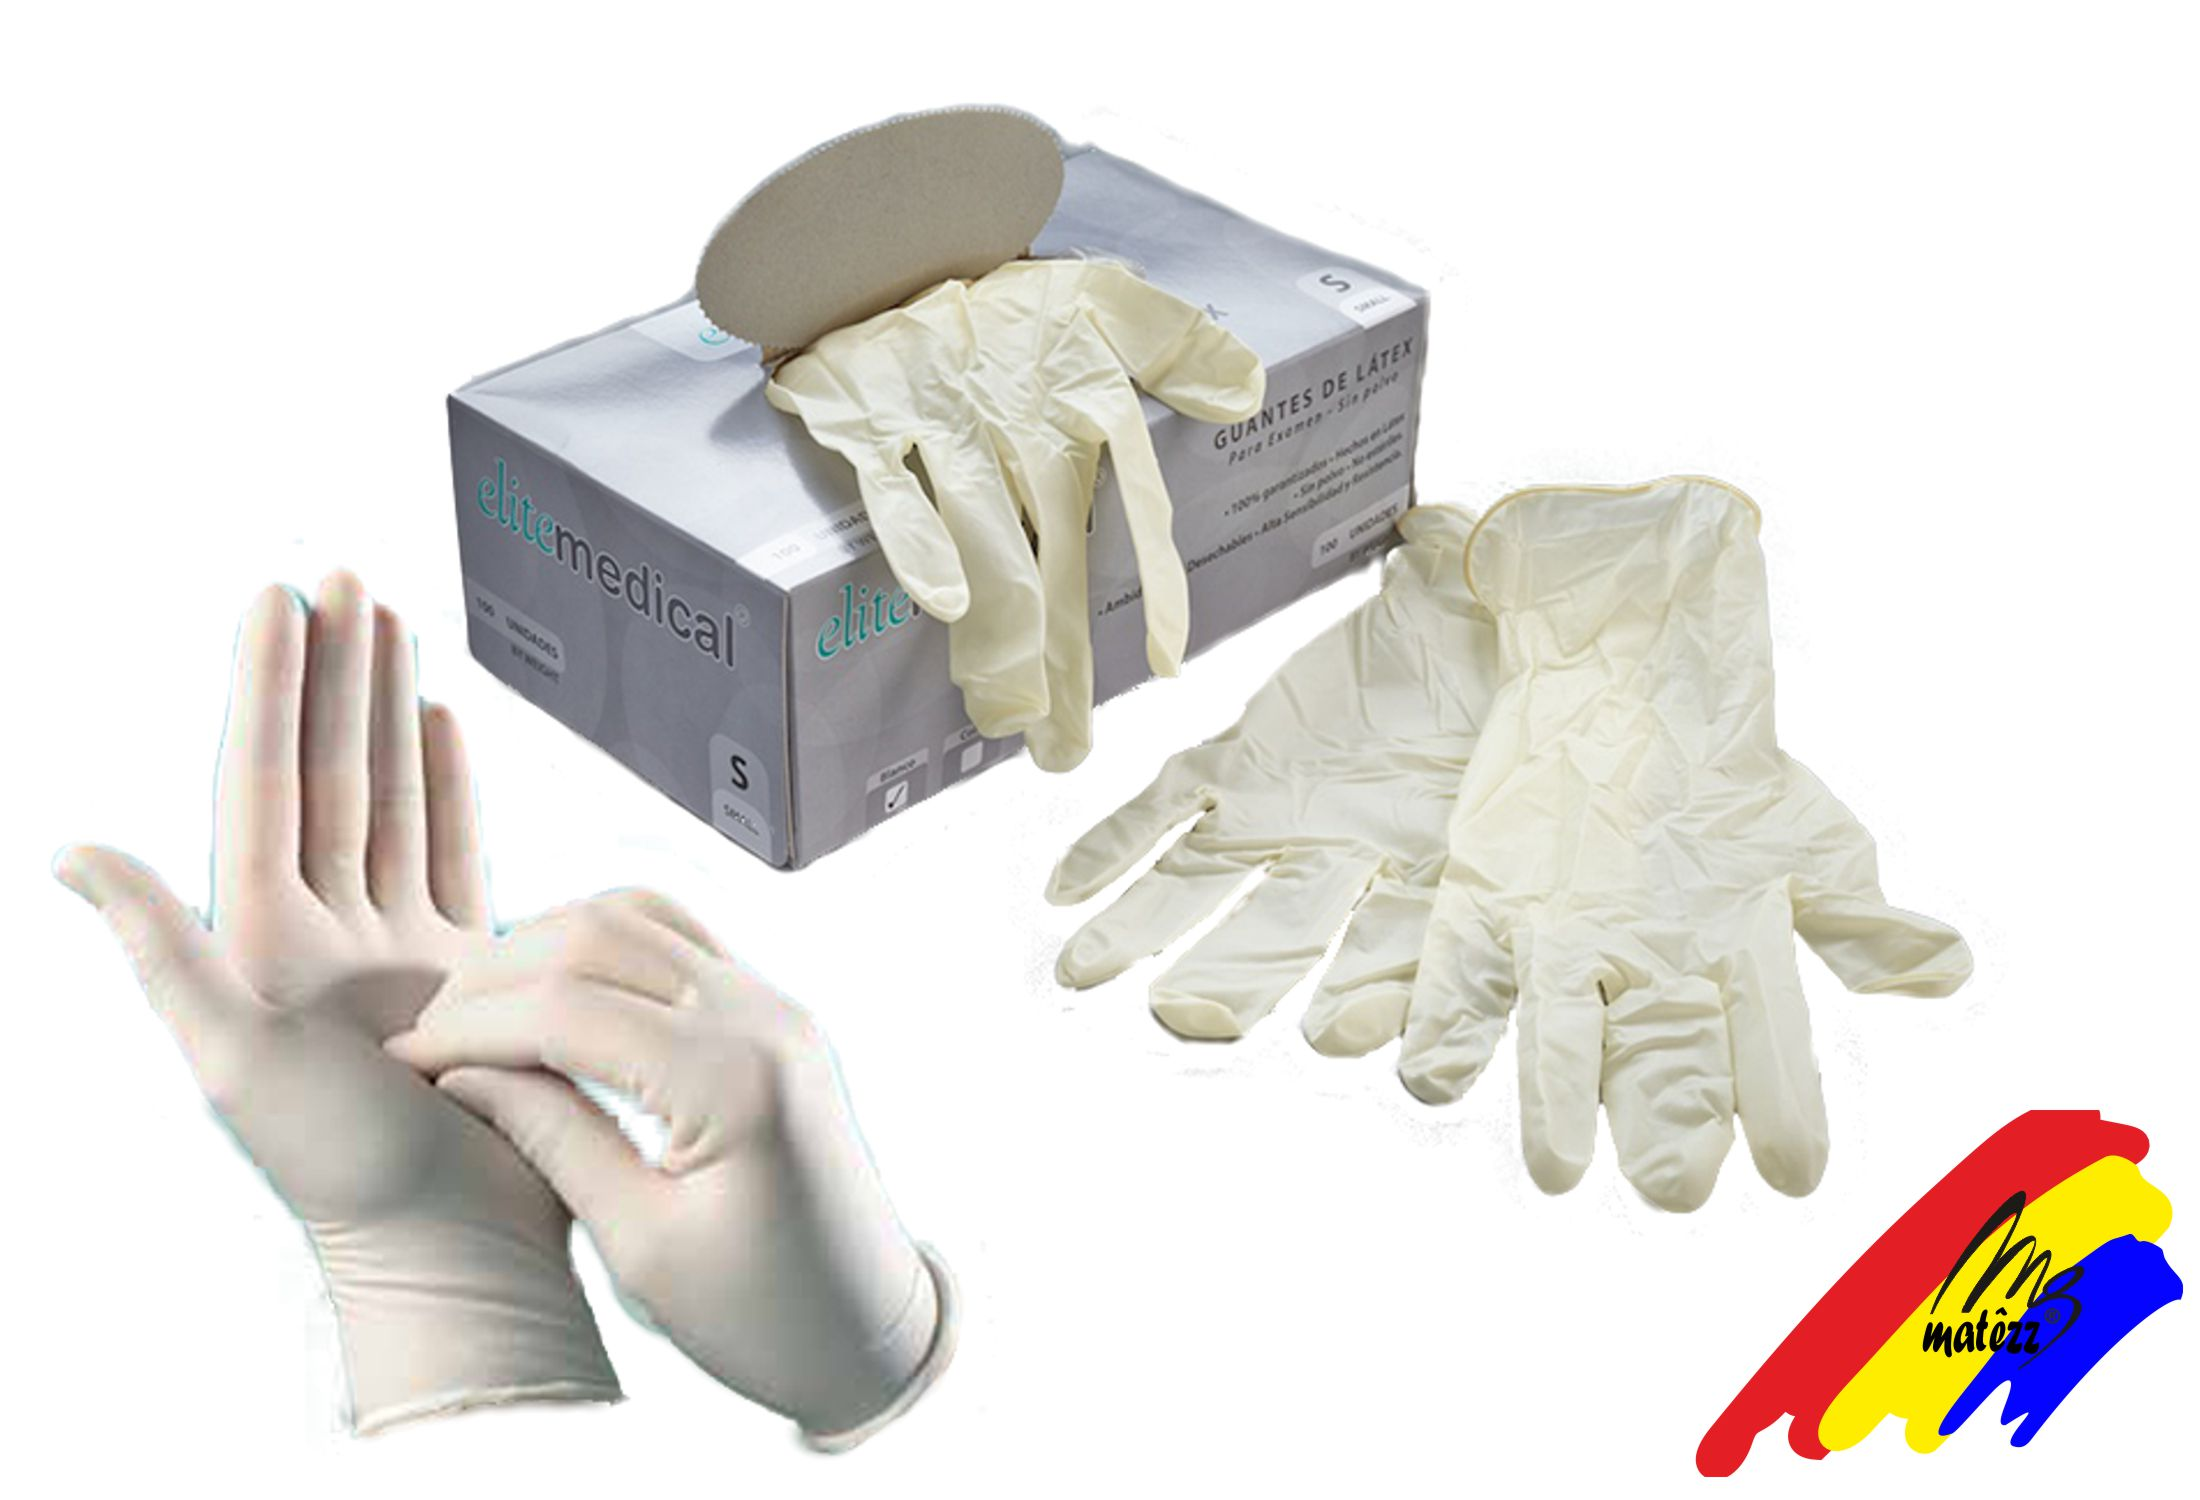 Guante Latex Descartable x100